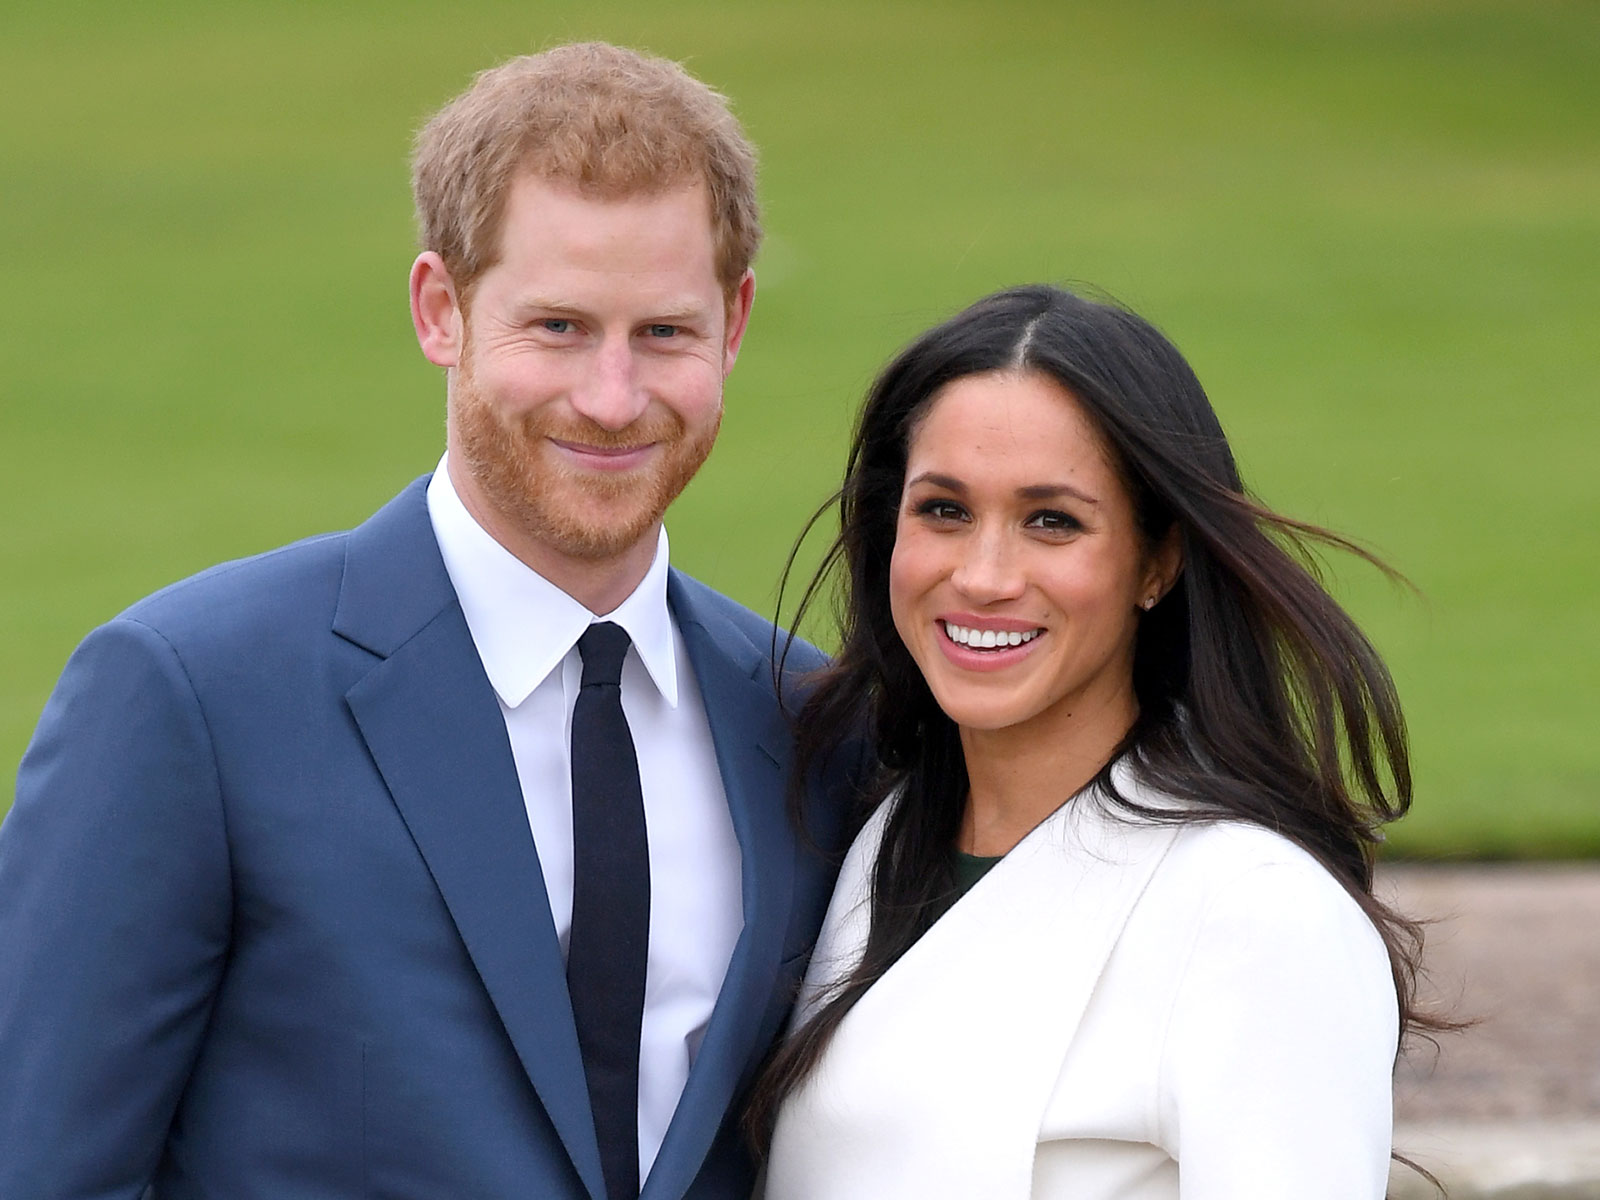 Prince Harry and Meghan Markle's Royal Wedding Menu: Everything We Know So Far